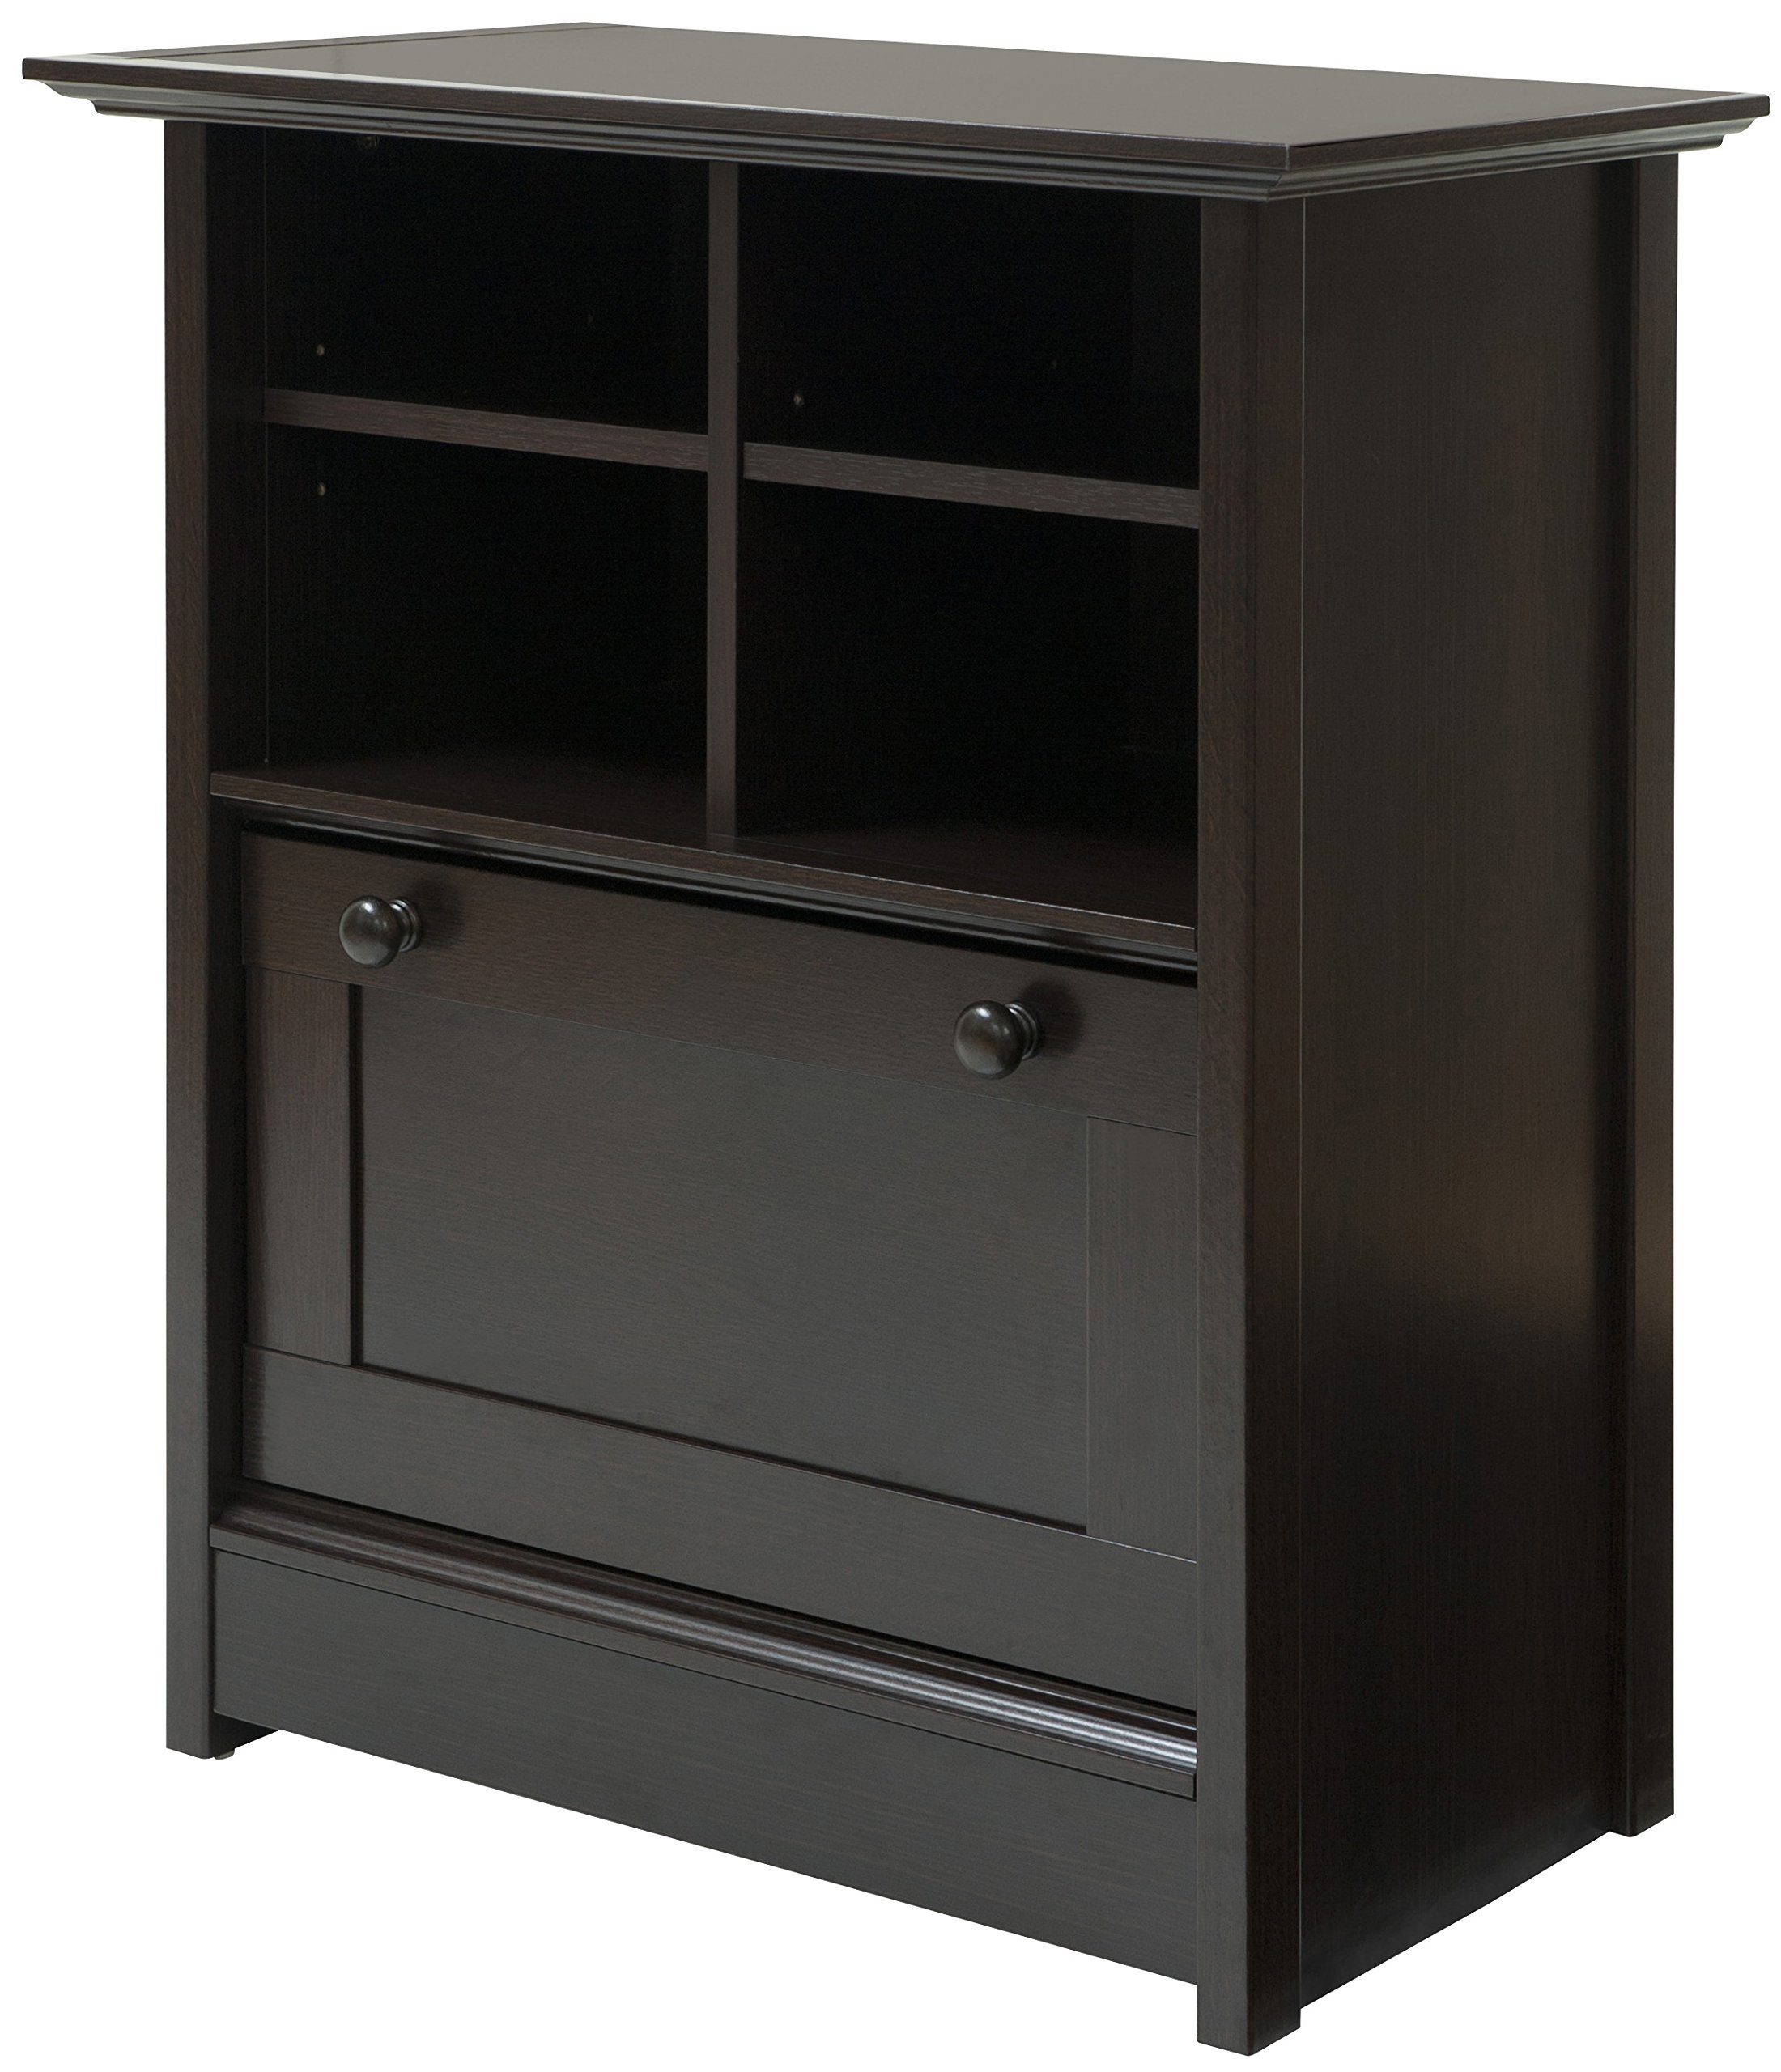 Comfort Products 60-COUB1028 Coublo Collection File Cabinet, Mocha Brown